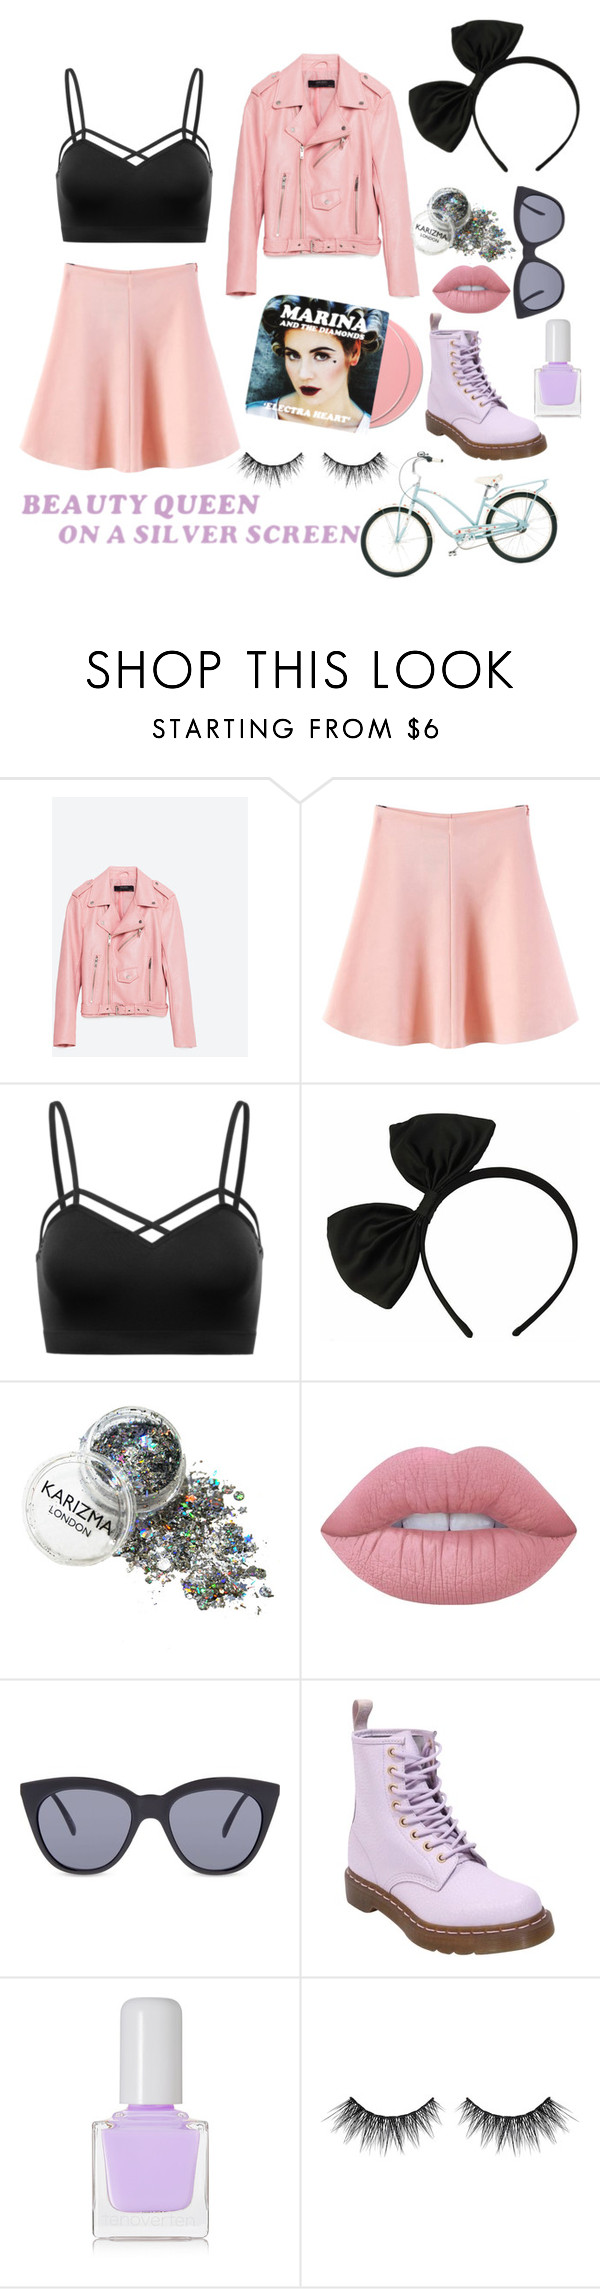 """""""♥Primadonna♥"""" by xpastelpandax ❤ liked on Polyvore featuring Piel Leather, WithChic, Lipsy, Lime Crime, Le Specs, Dr. Martens, tenoverten and Huda Beauty"""